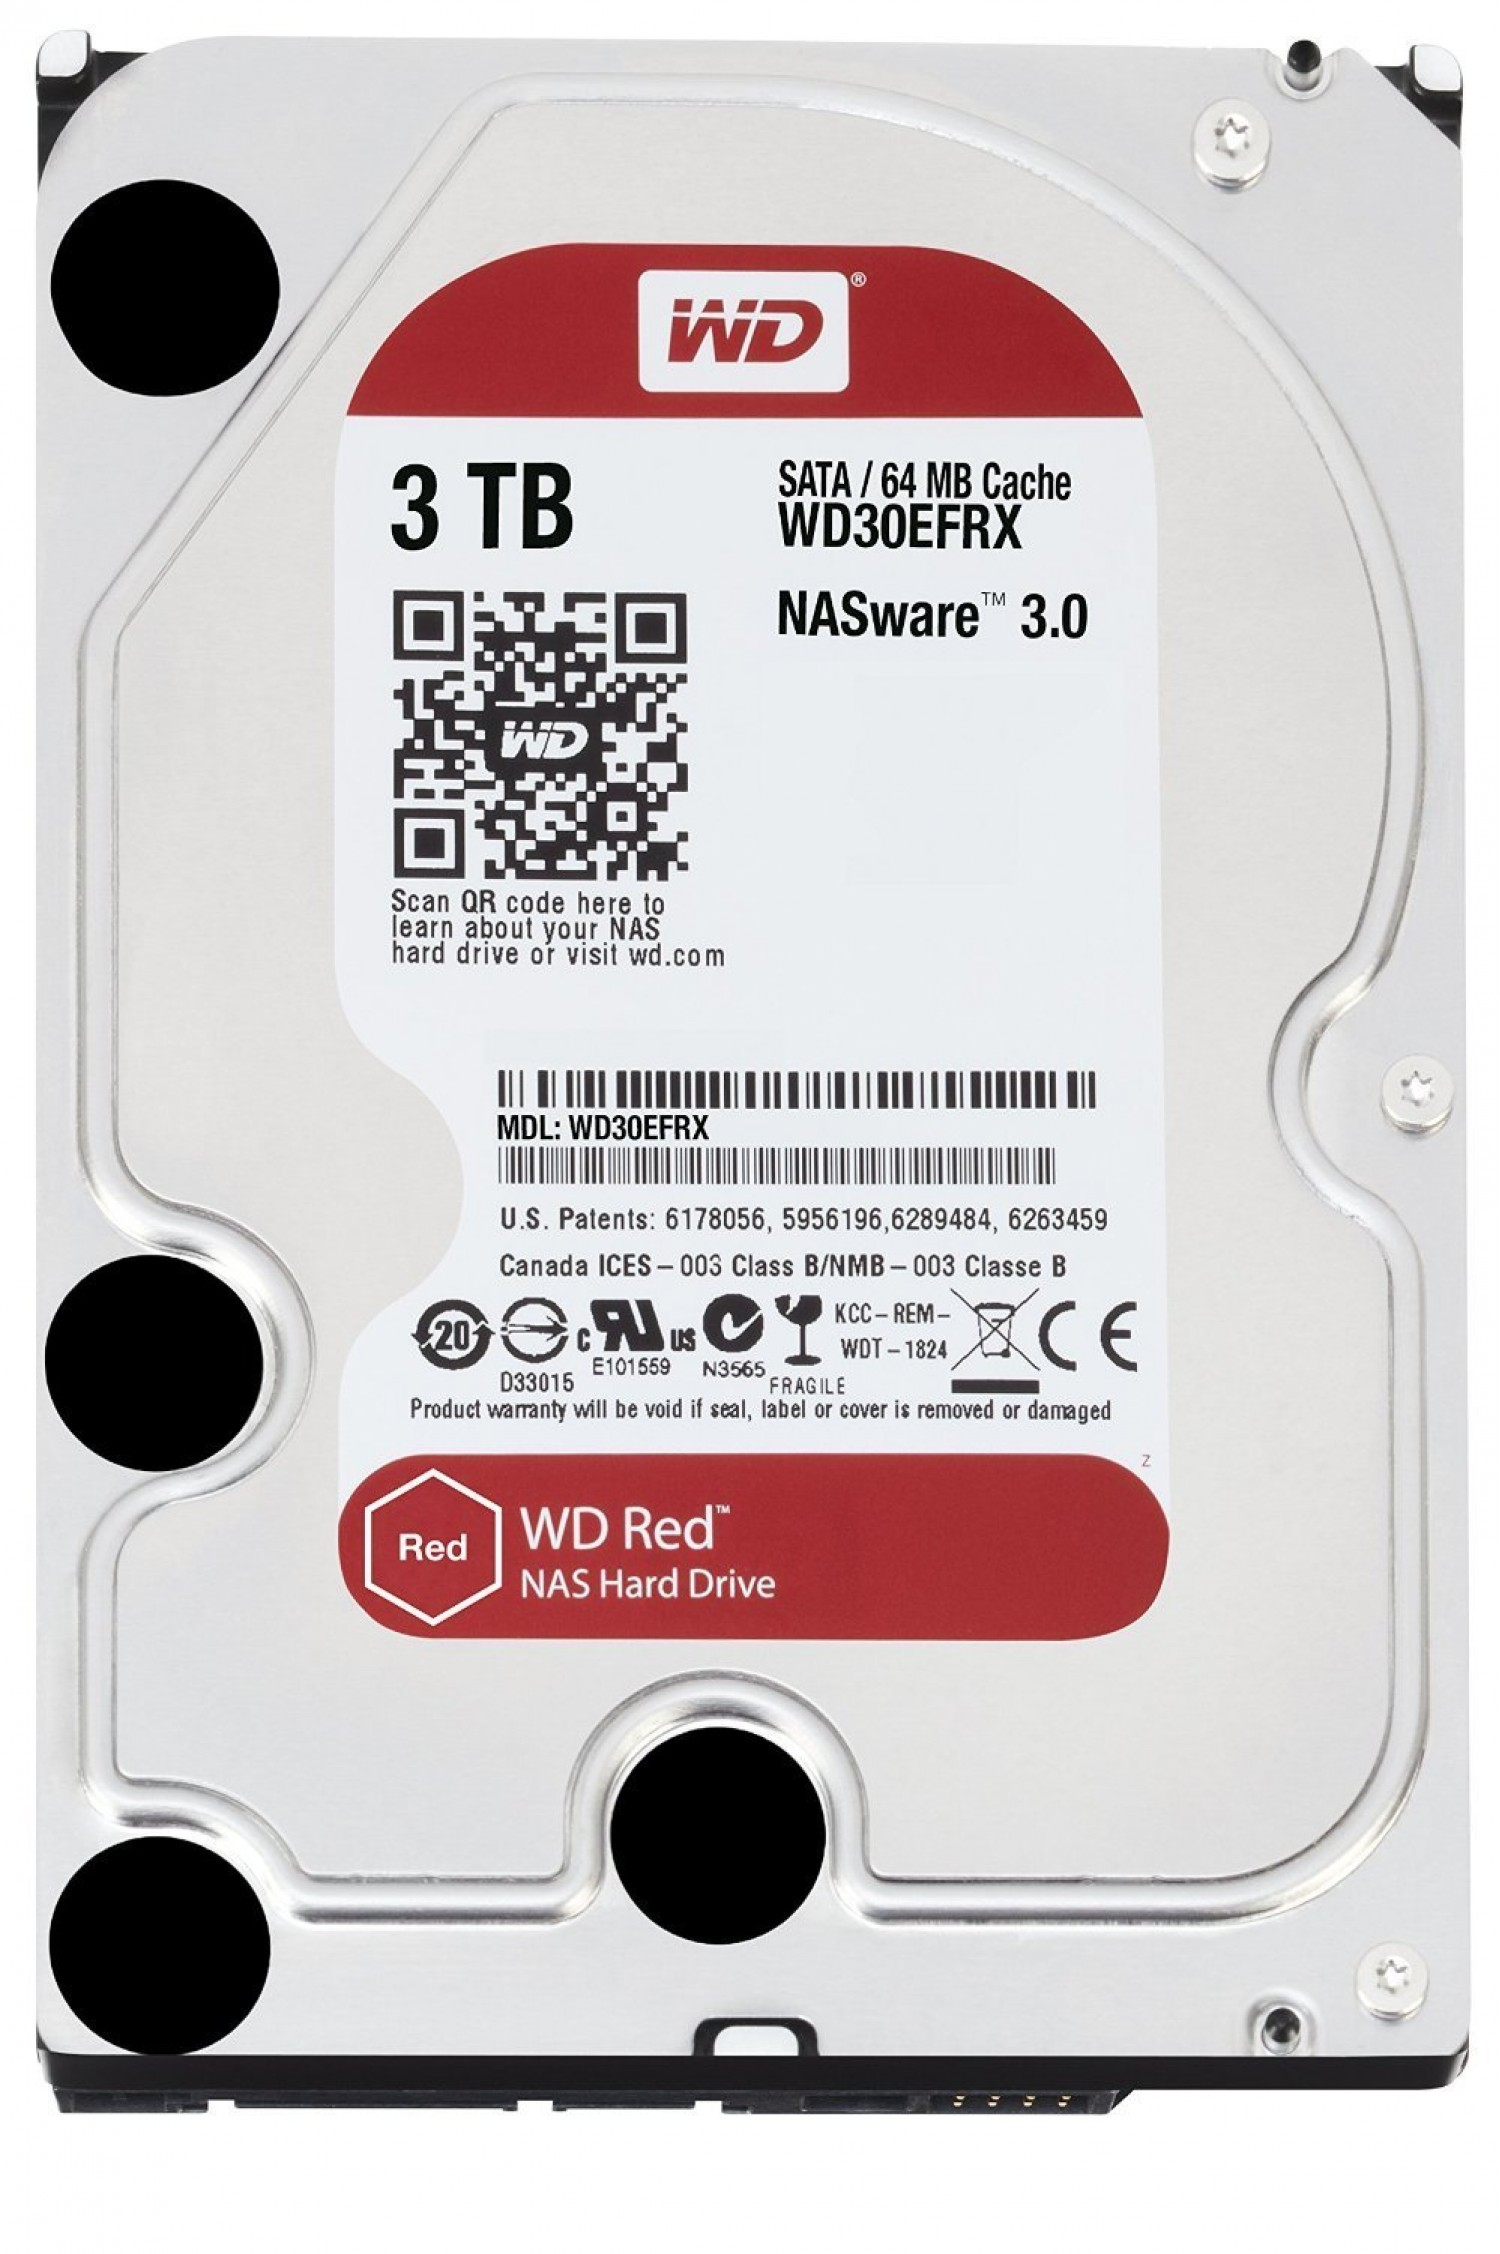 DISCO HDD WD S 3 TB S-ATA3 RED 64MB